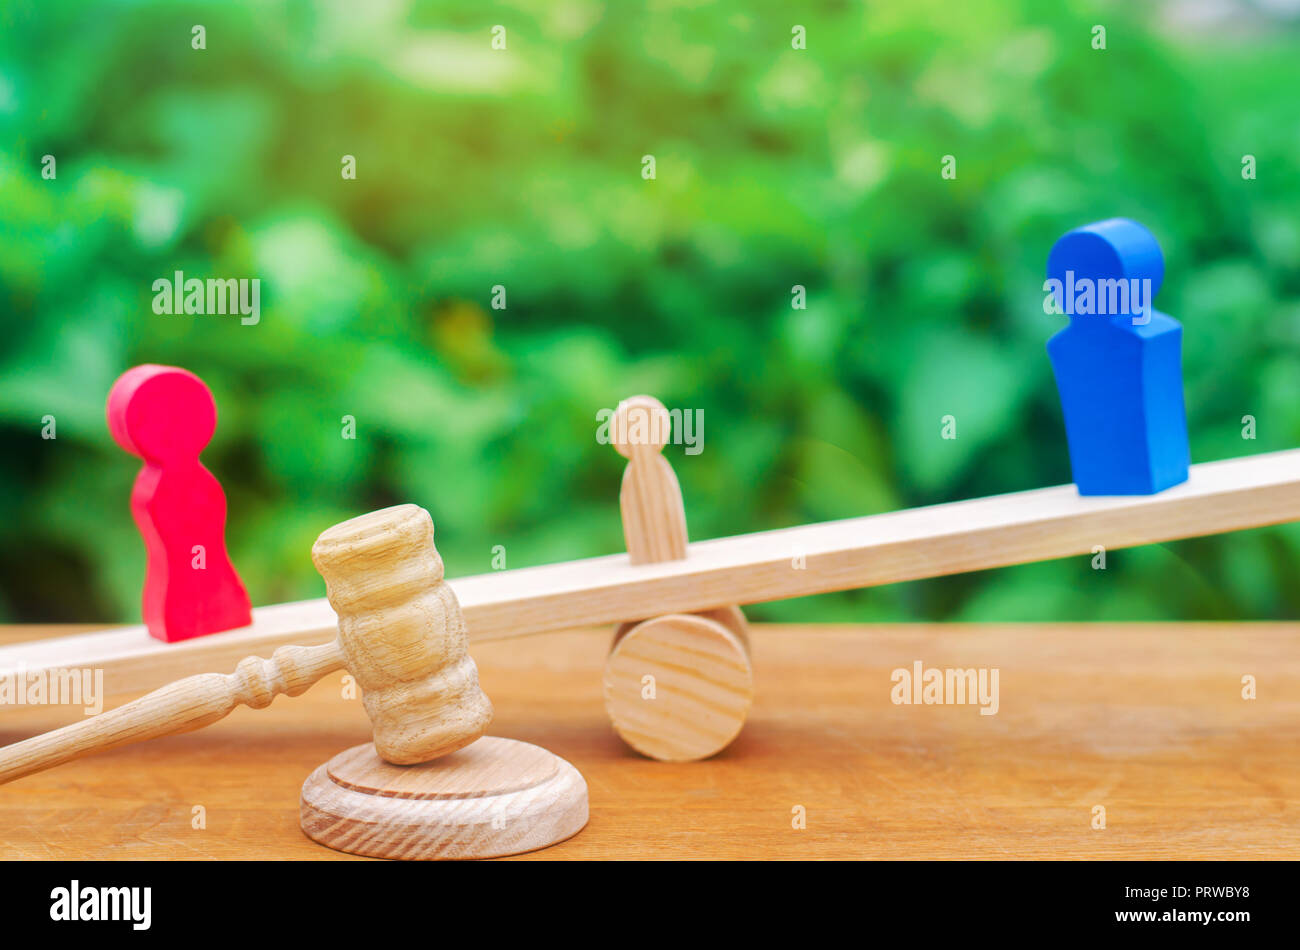 deprivation of parental rights. concept of custody of a child. legal divorce. hammer of a judge. family court, law. parents stand on scales. trial - Stock Image